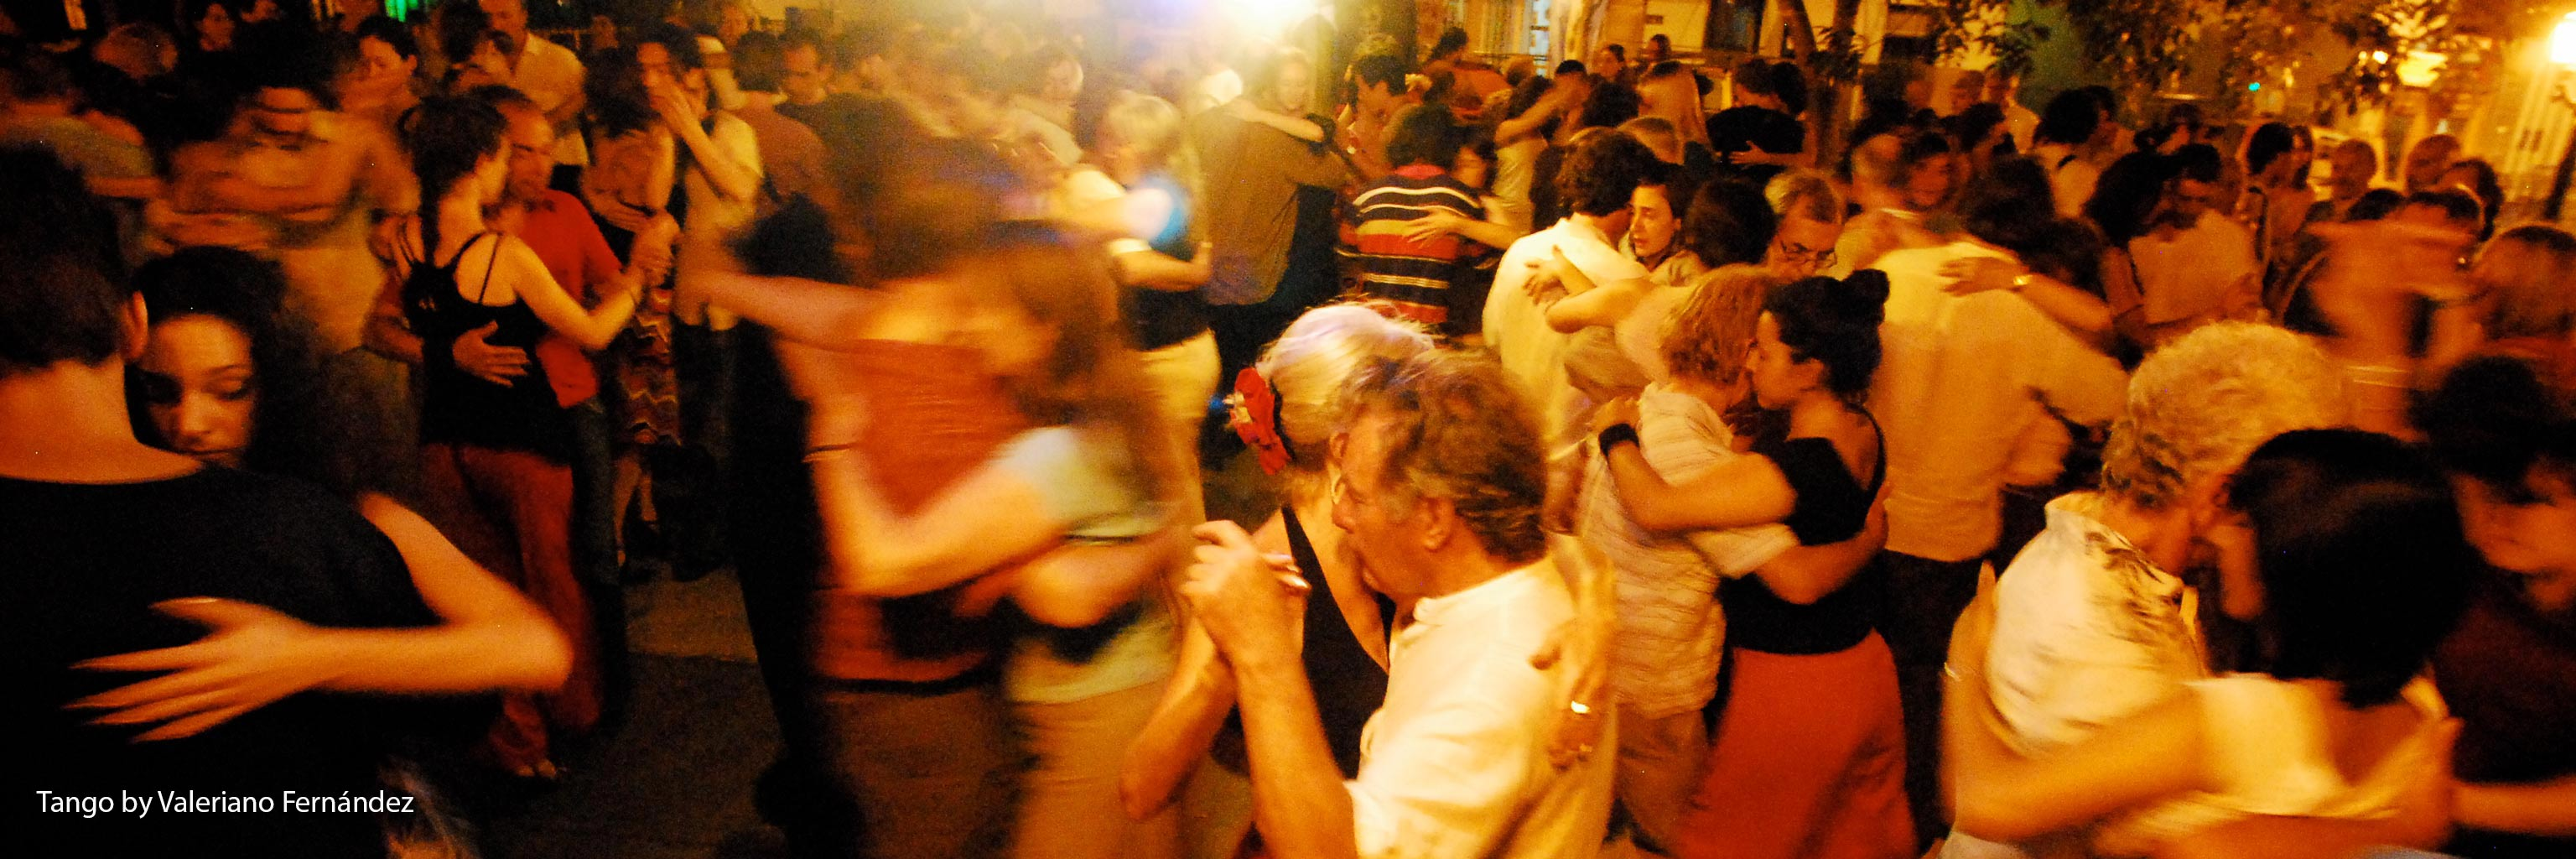 A crowd of people dancing